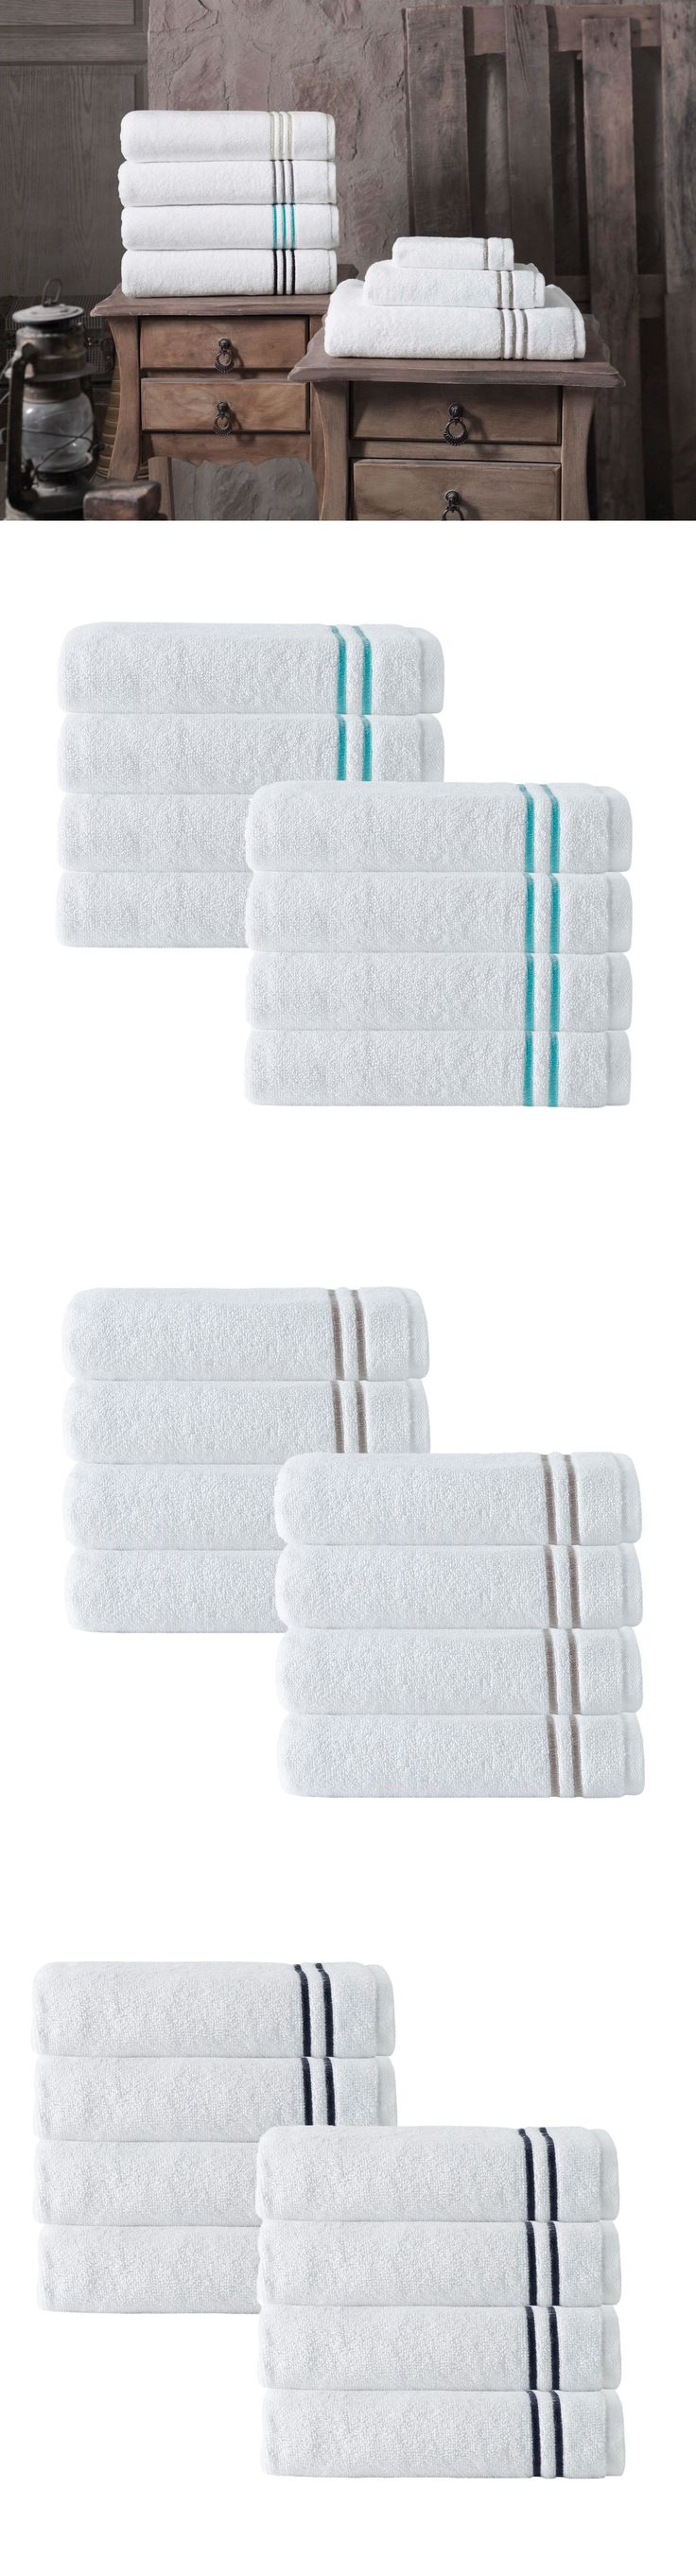 Towels and Washcloths 40587: Enchante Home Broderie Luxurious Turkish Premium Cotton Hand Towels Set Of 8 Pcs -> BUY IT NOW ONLY: $49.99 on eBay!